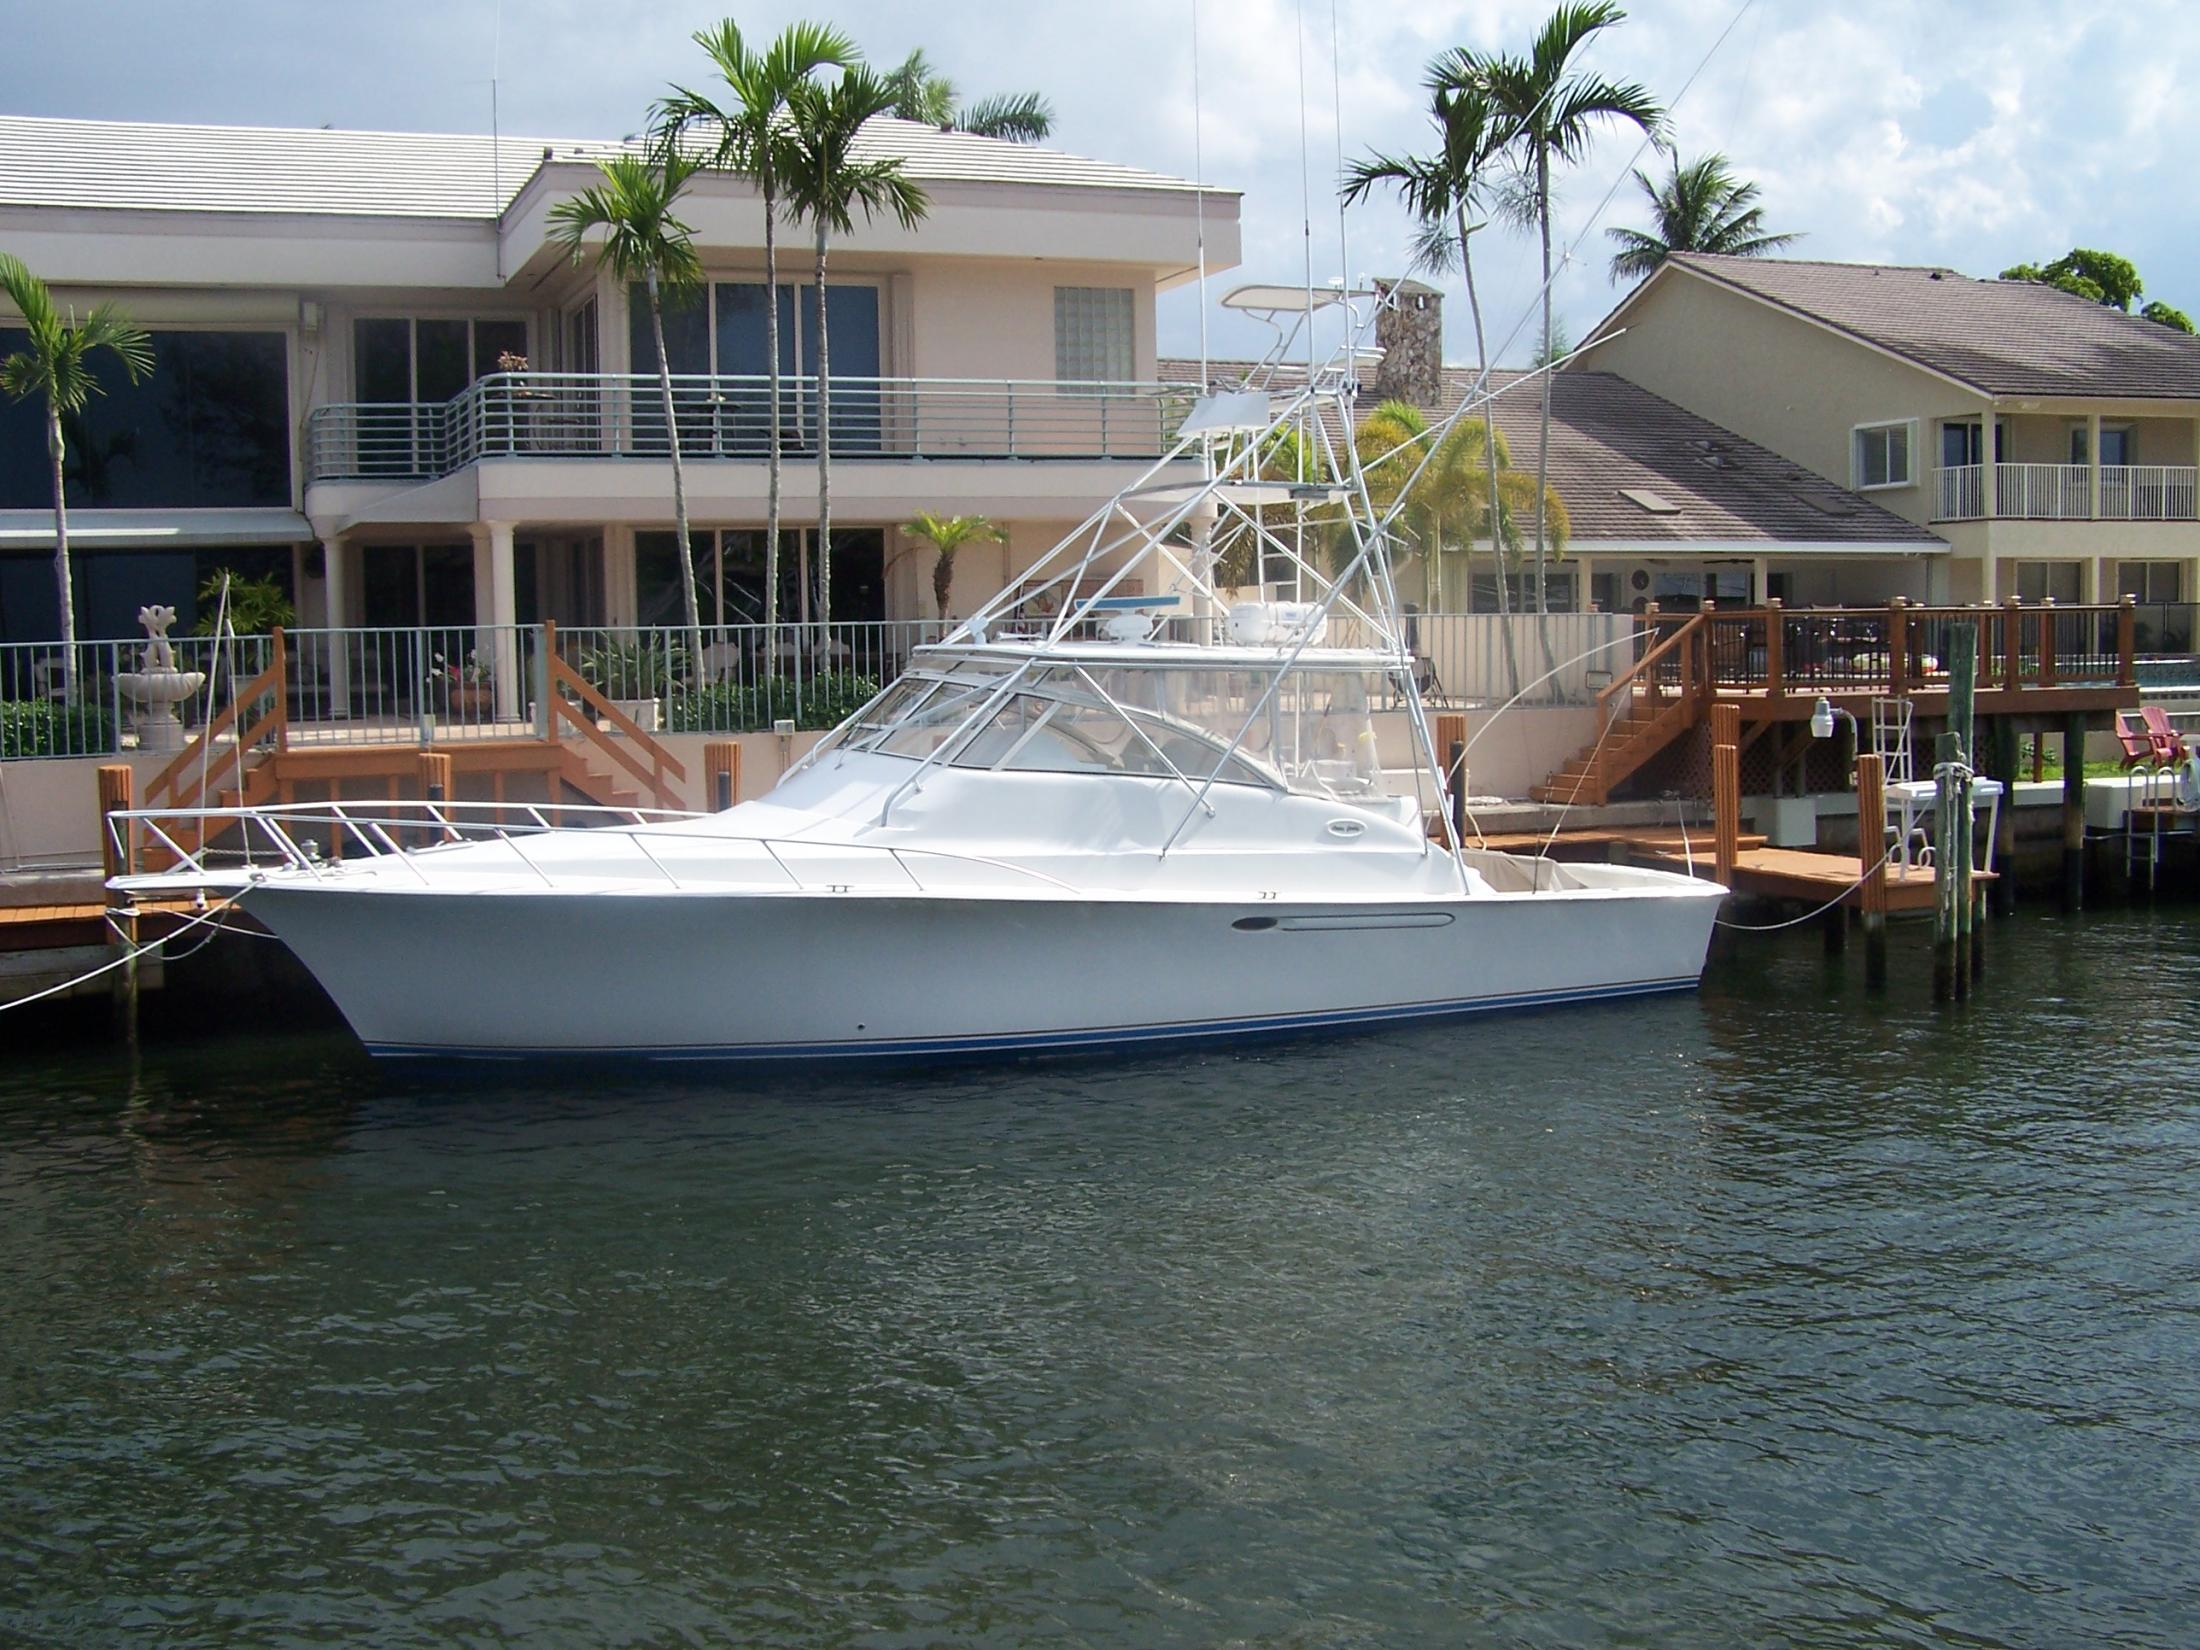 48 ocean yachts 2000 southern pride for sale in north palm for Ocean yachts 48 motor yacht for sale